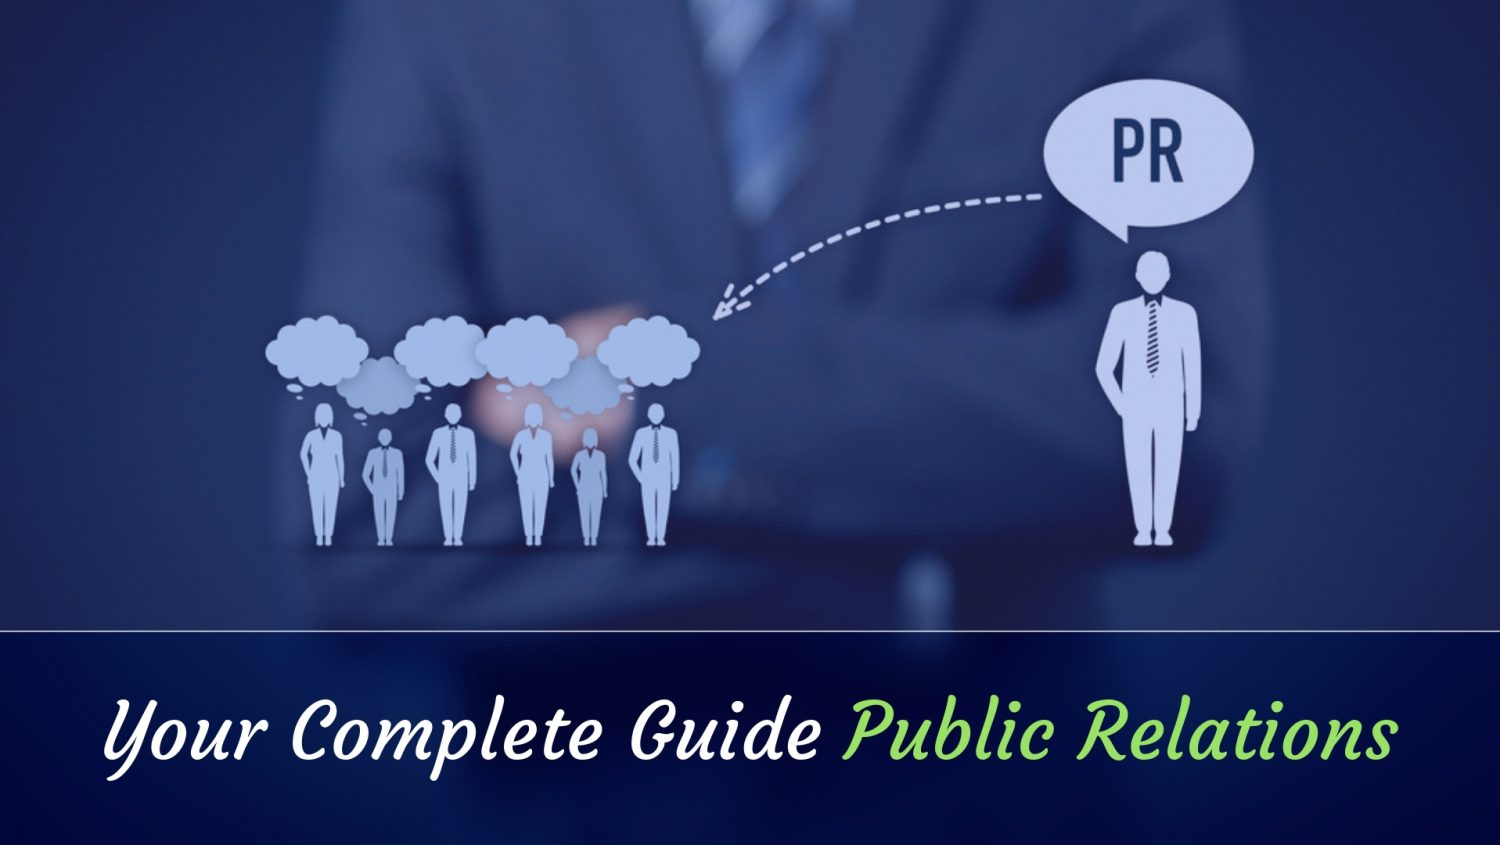 Public relations strategy guide